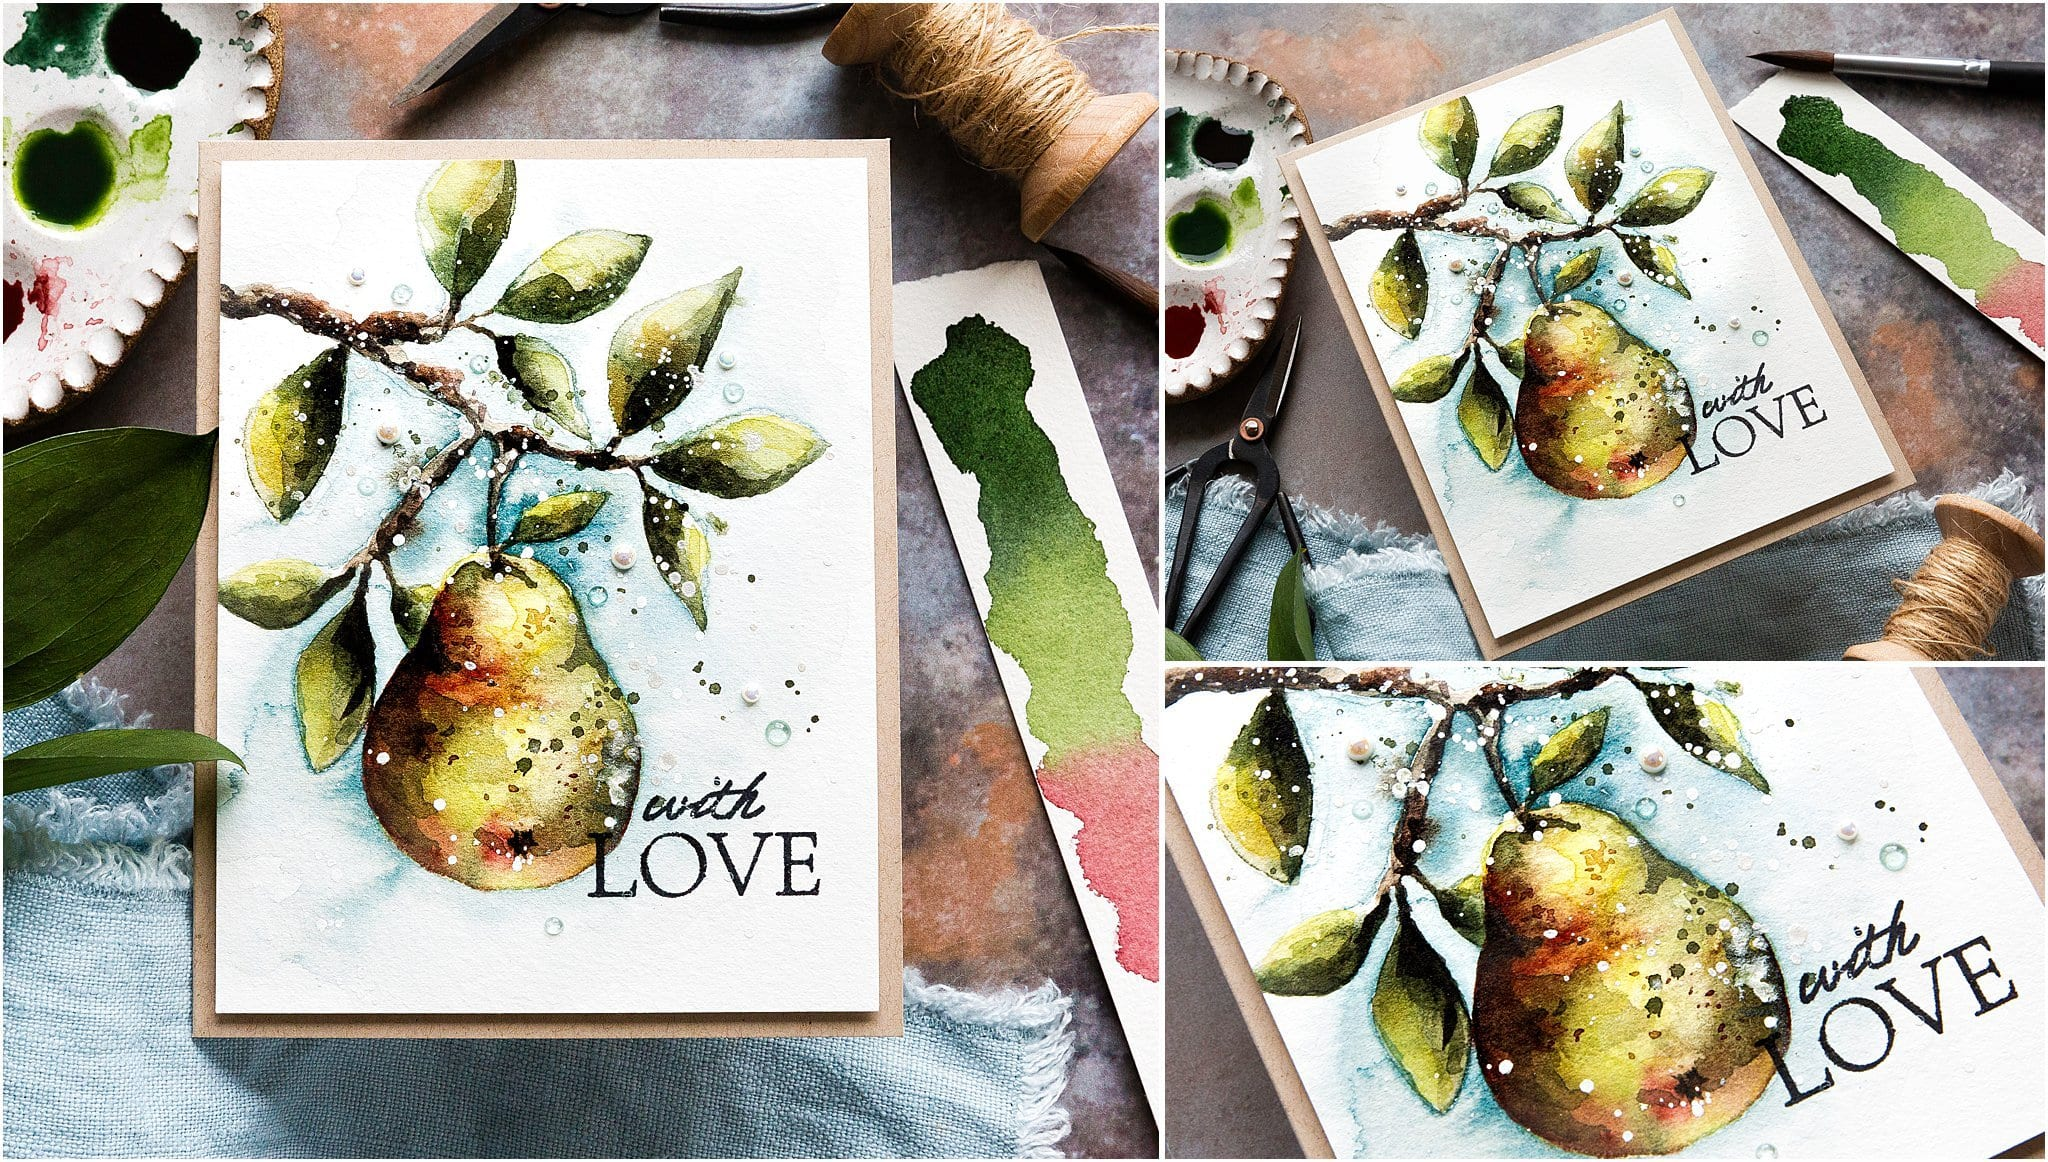 Video tutorial - getting that all important watercolour mixing and paint to water ratio right. Handmade card by Debby Hughes using supplies from Simon Says Stamp #handmadecards #cardmaking #cardmakingideas #cardmakingtechniques  #cardmakingtutorials #handmadecardideas #simonsaysstamp